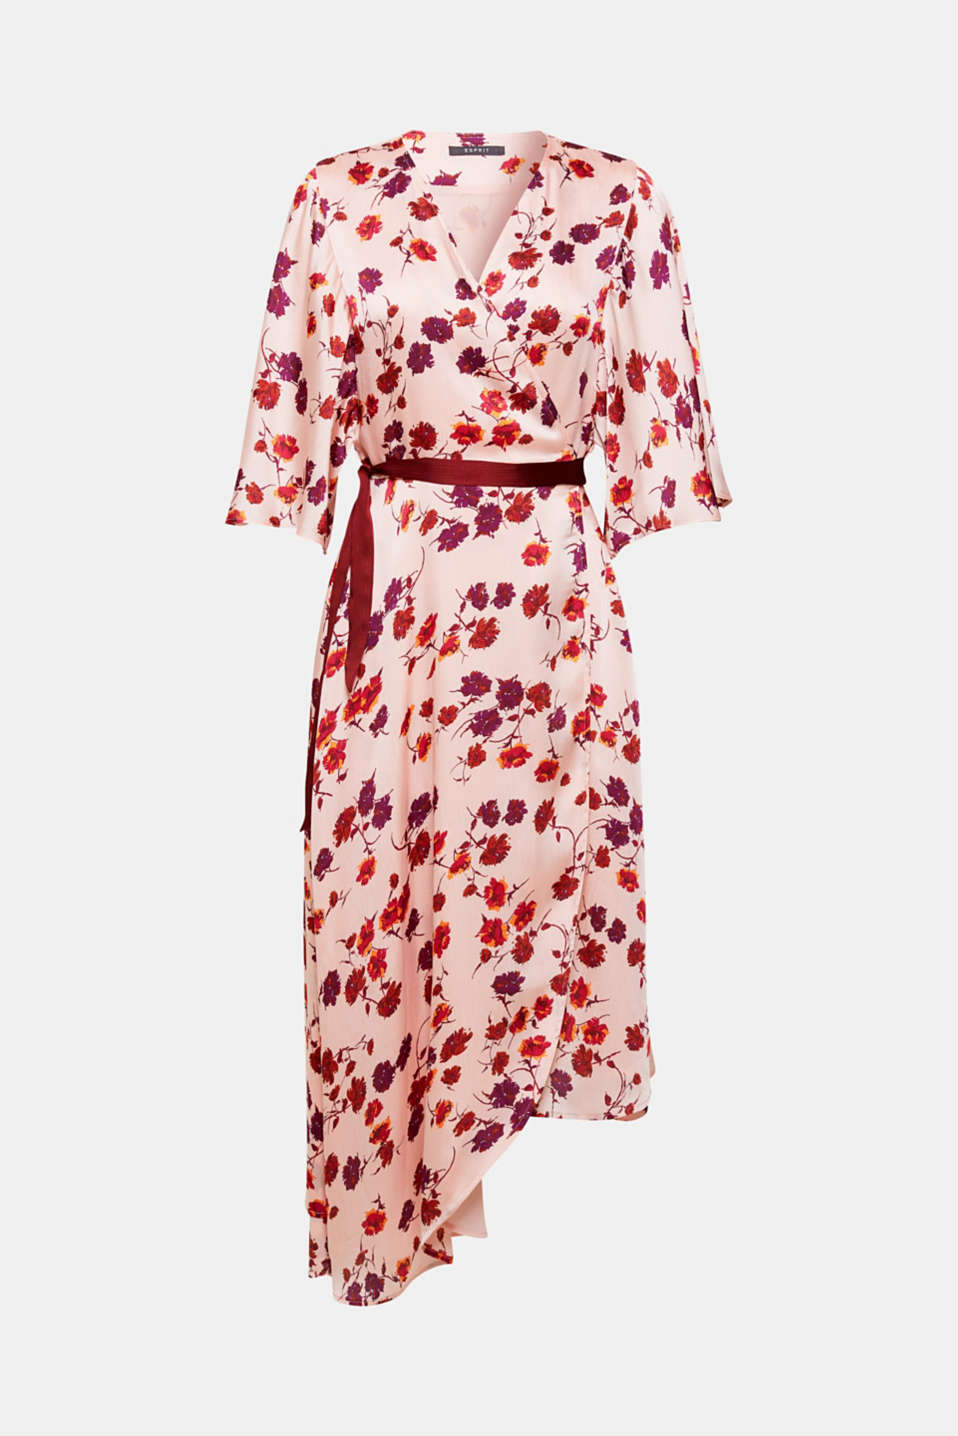 You will love this dress in an adjustable wrap-over look: The flowing design with a dreamy floral print, pretty cap sleeves and an asymmetric hem looks particularly feminine and elegant!